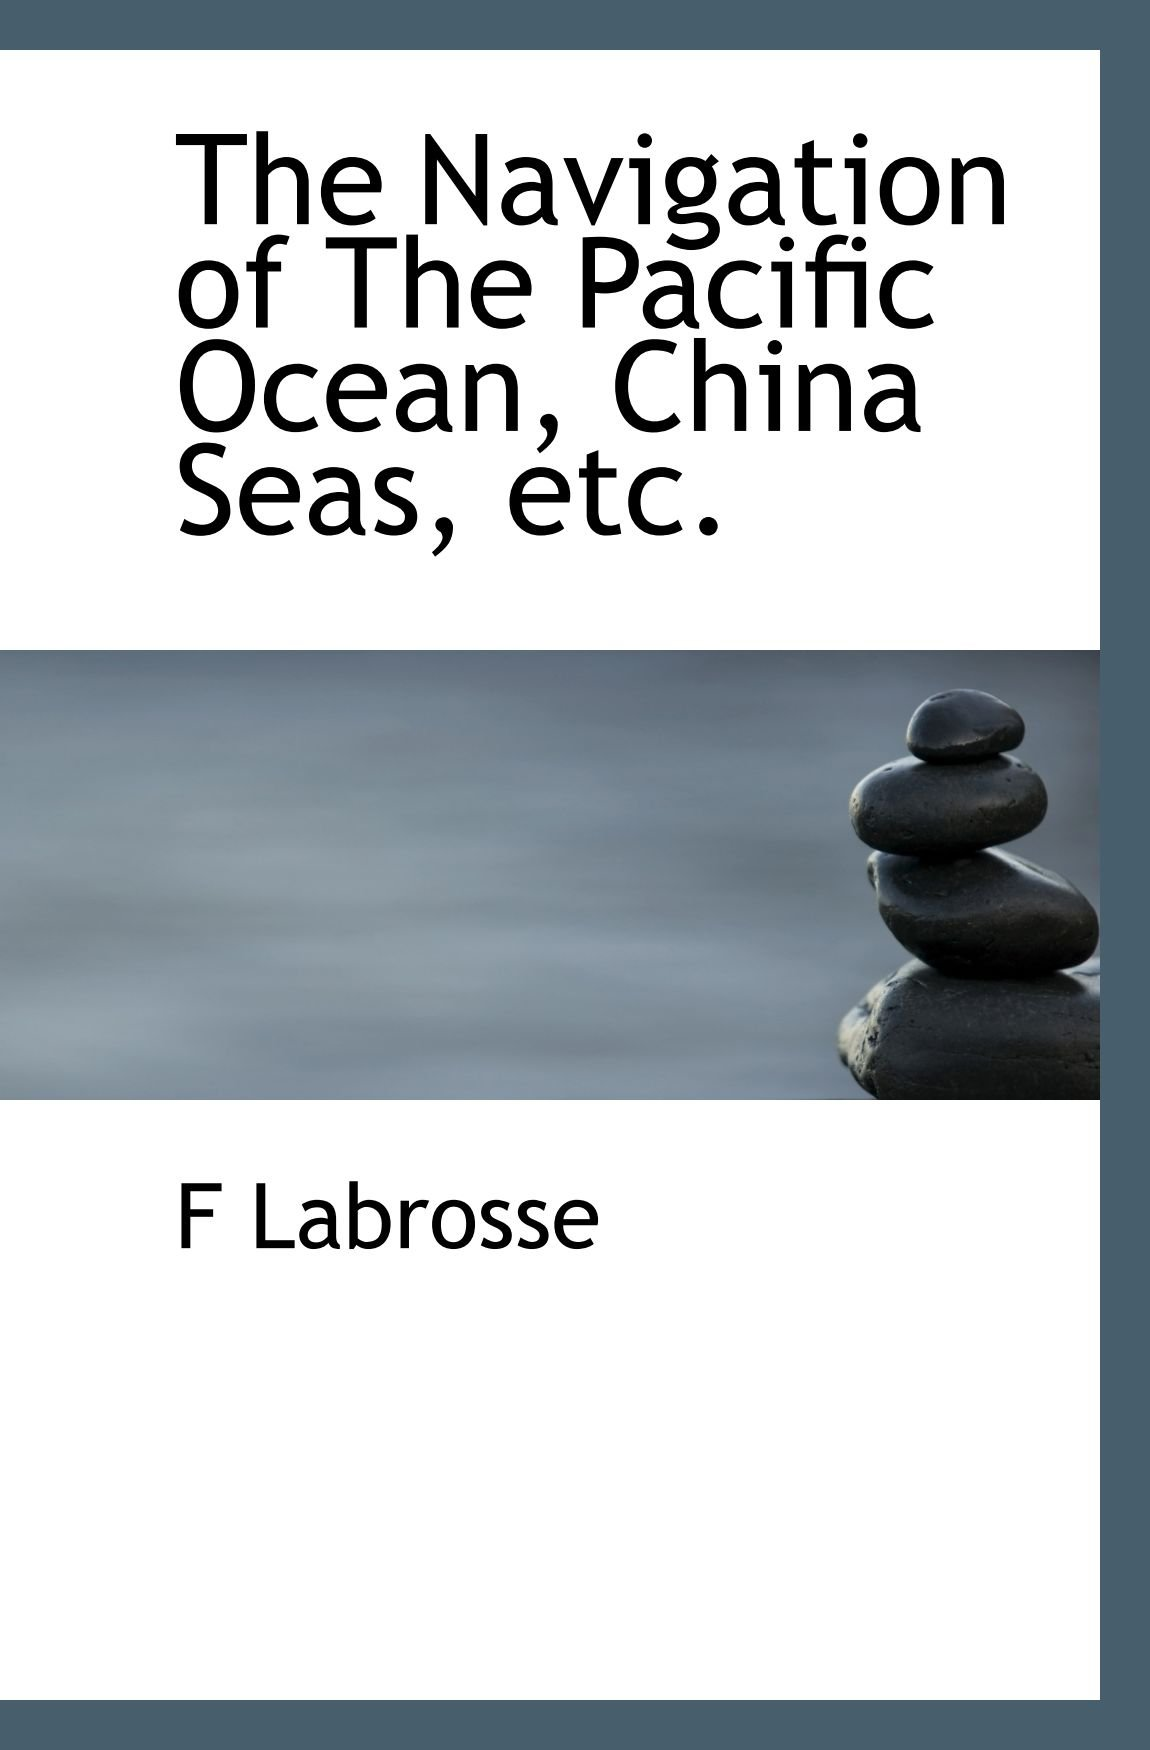 The Navigation of The Pacific Ocean, China Seas, etc. pdf epub